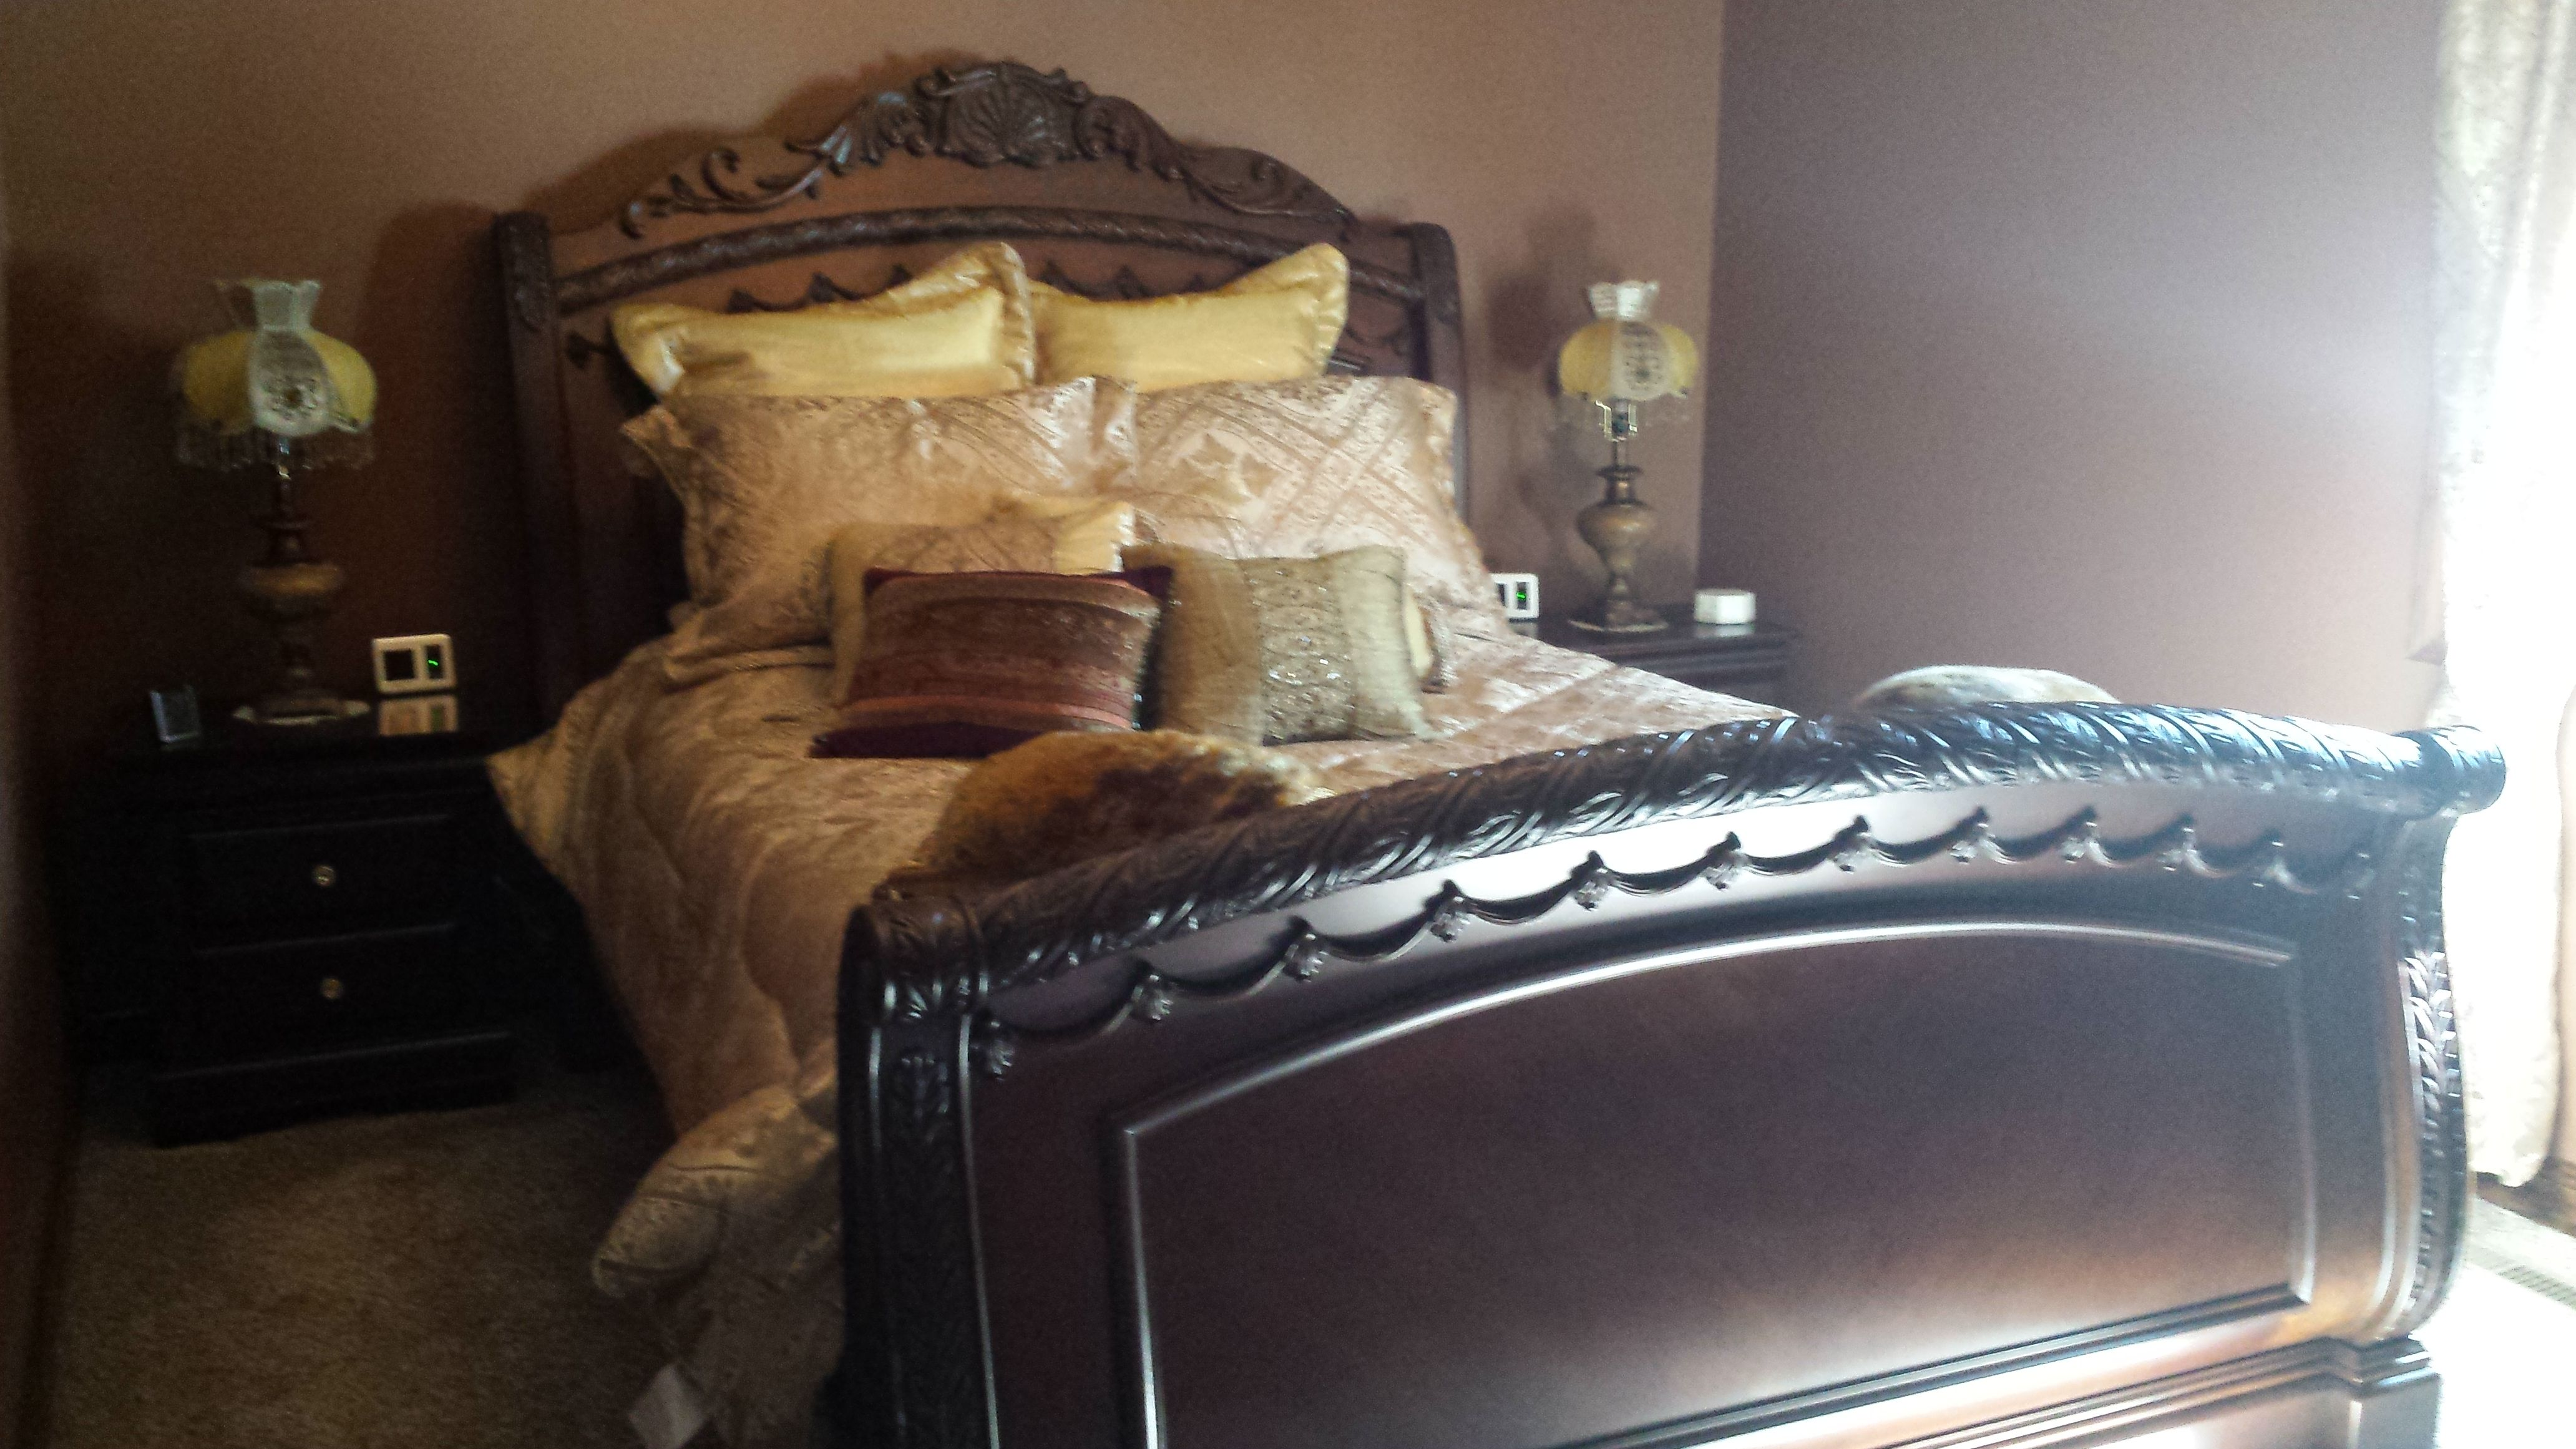 Find This Pin And More On Master Bedroom Ideas Brown Paint From Sherwin Williams North Shore Sleigh Bed From Ashley Furniture